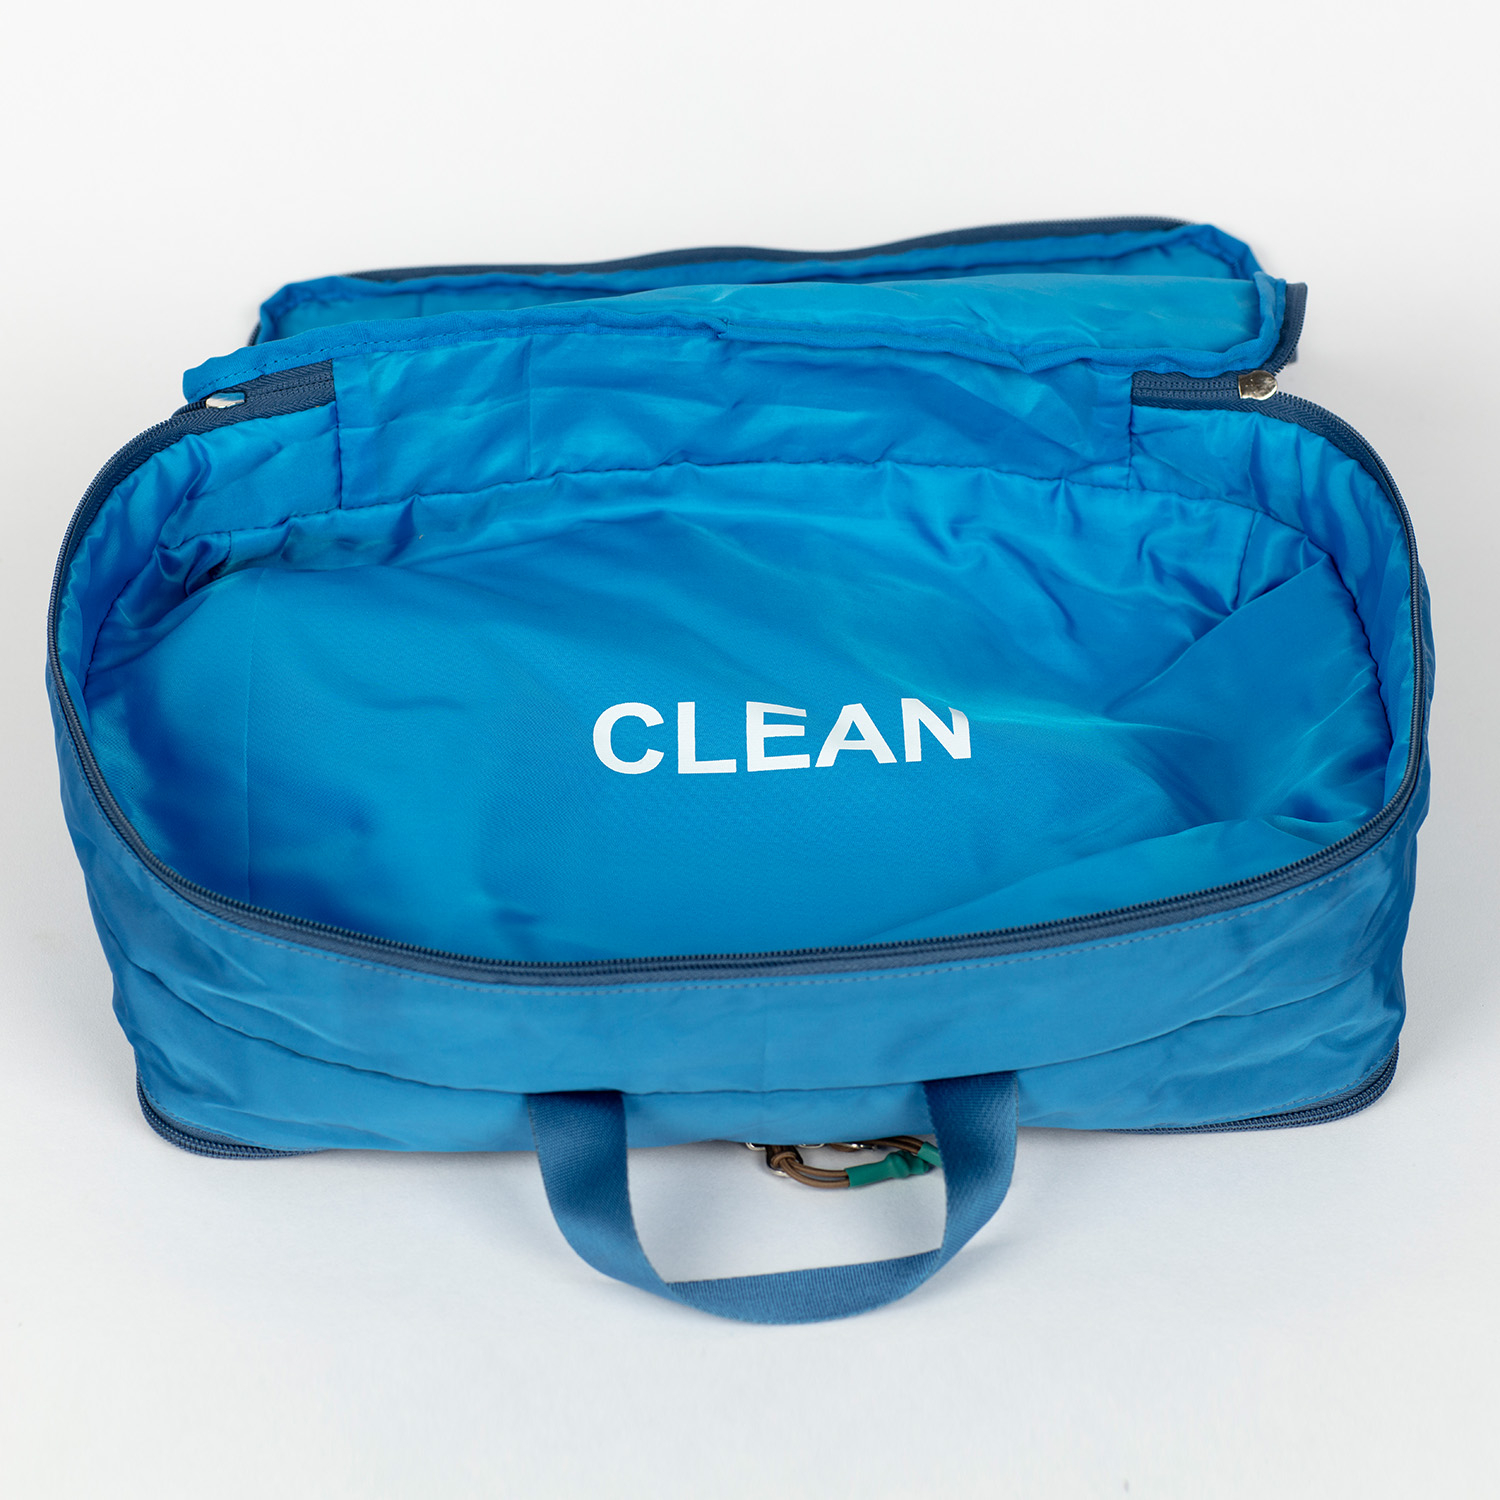 CLOTHES TRAVEL BAG